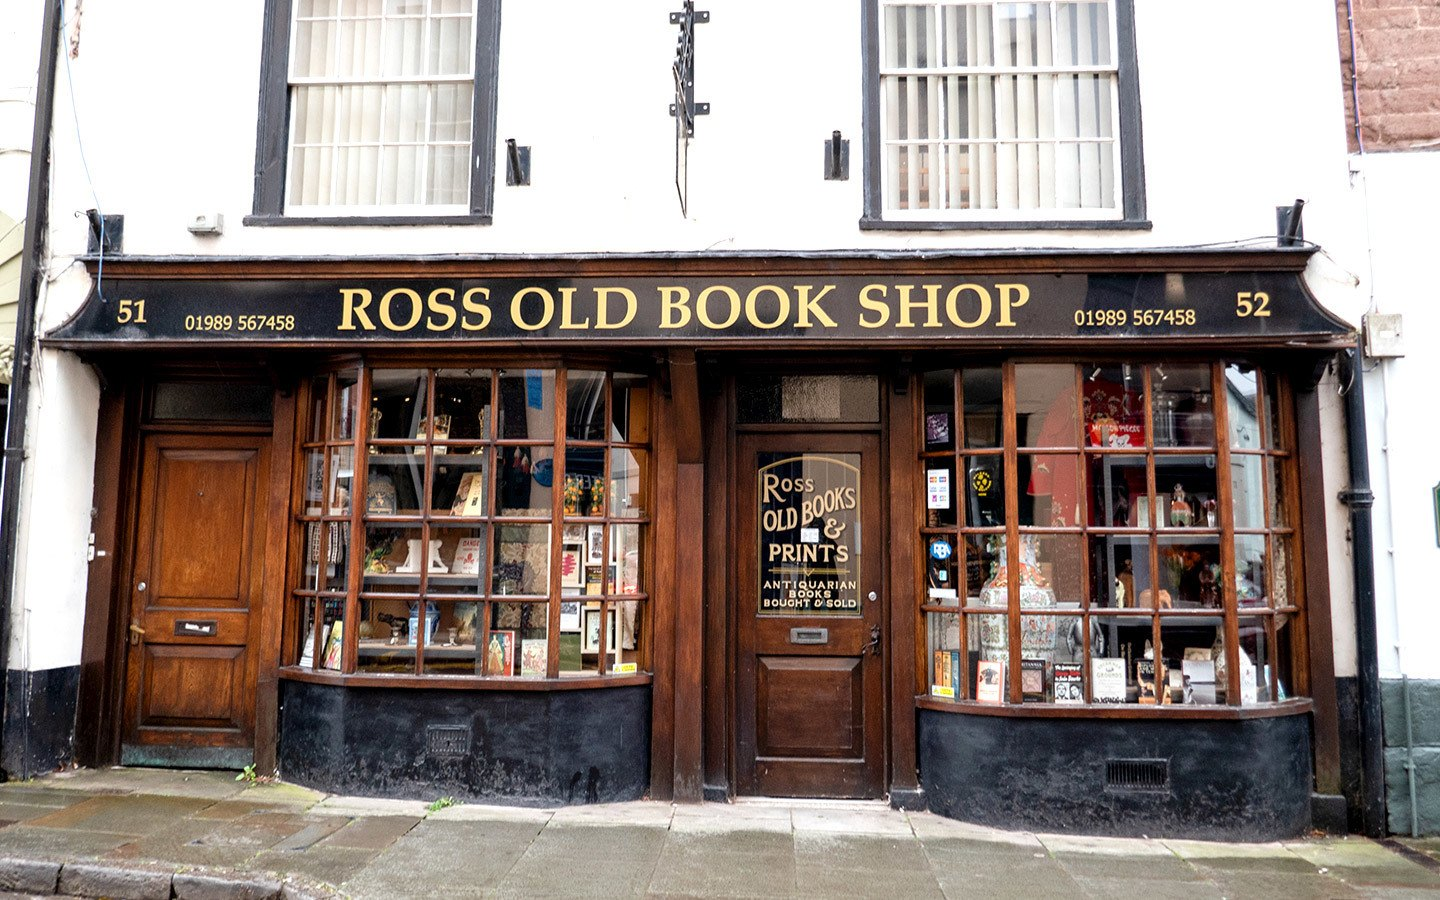 Ross-on-Wye Old Book Shop